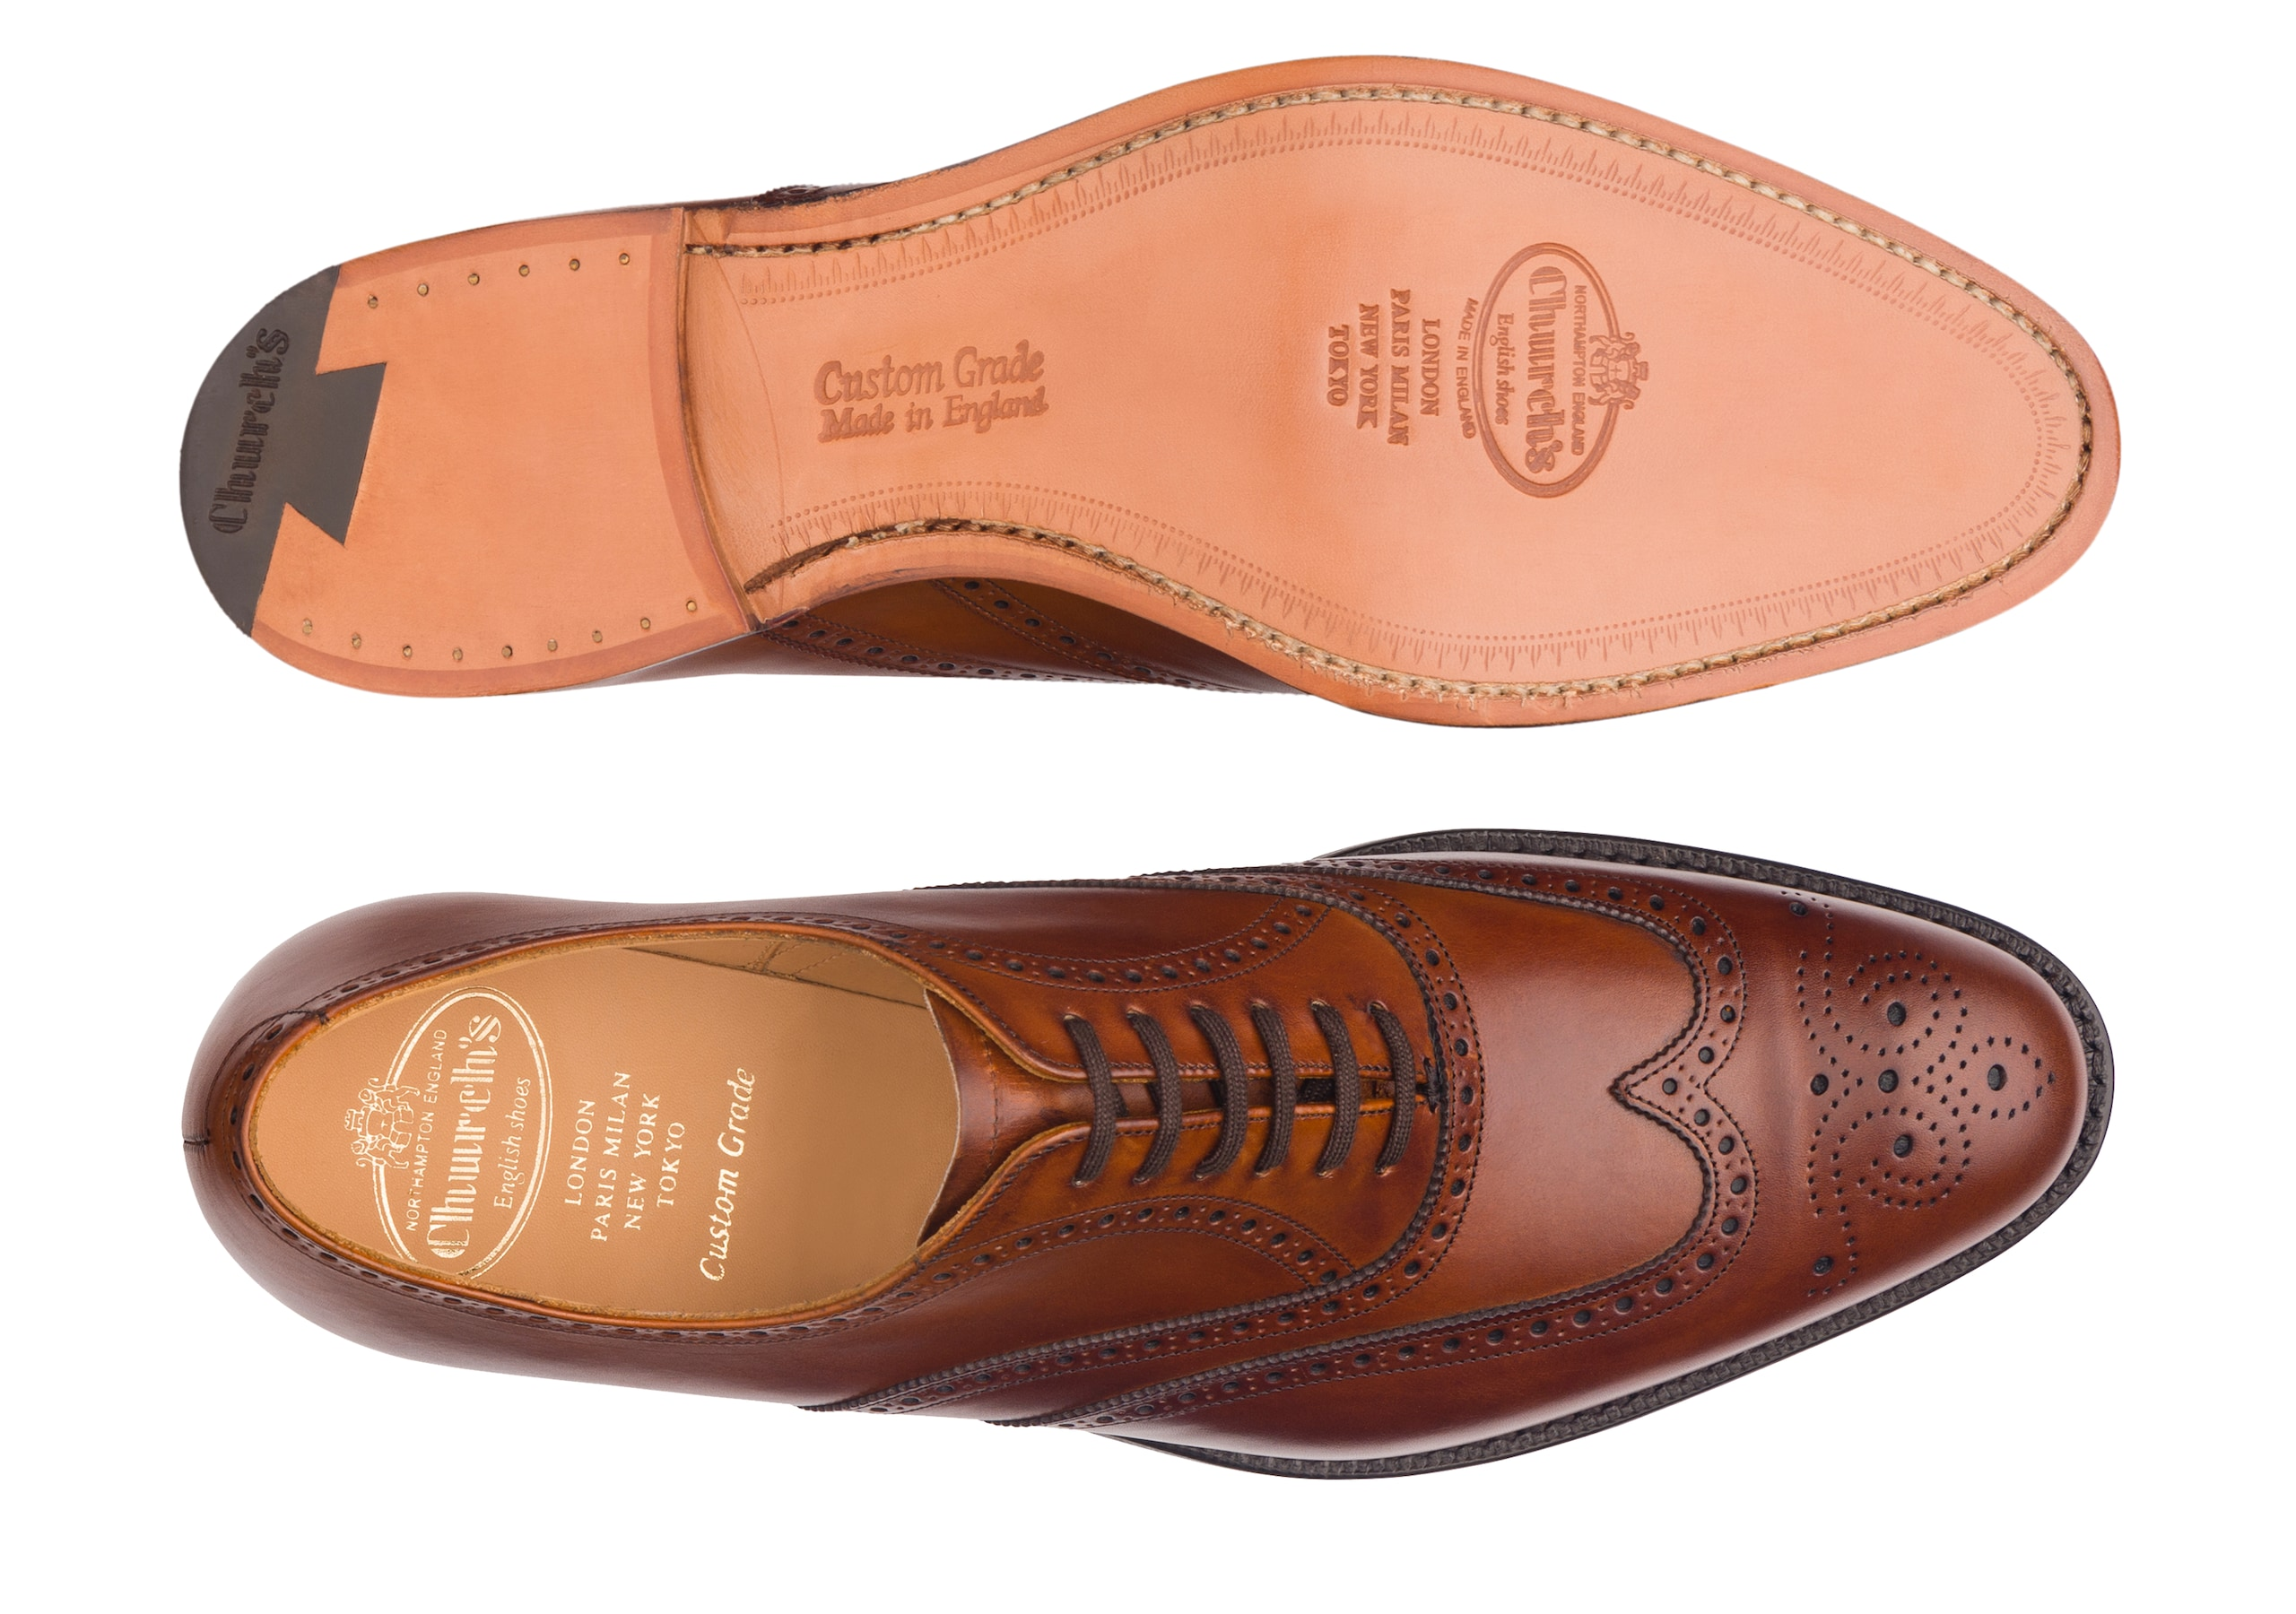 Berlin Church's Oxford Brogue in Pelle di Vitello Marrone